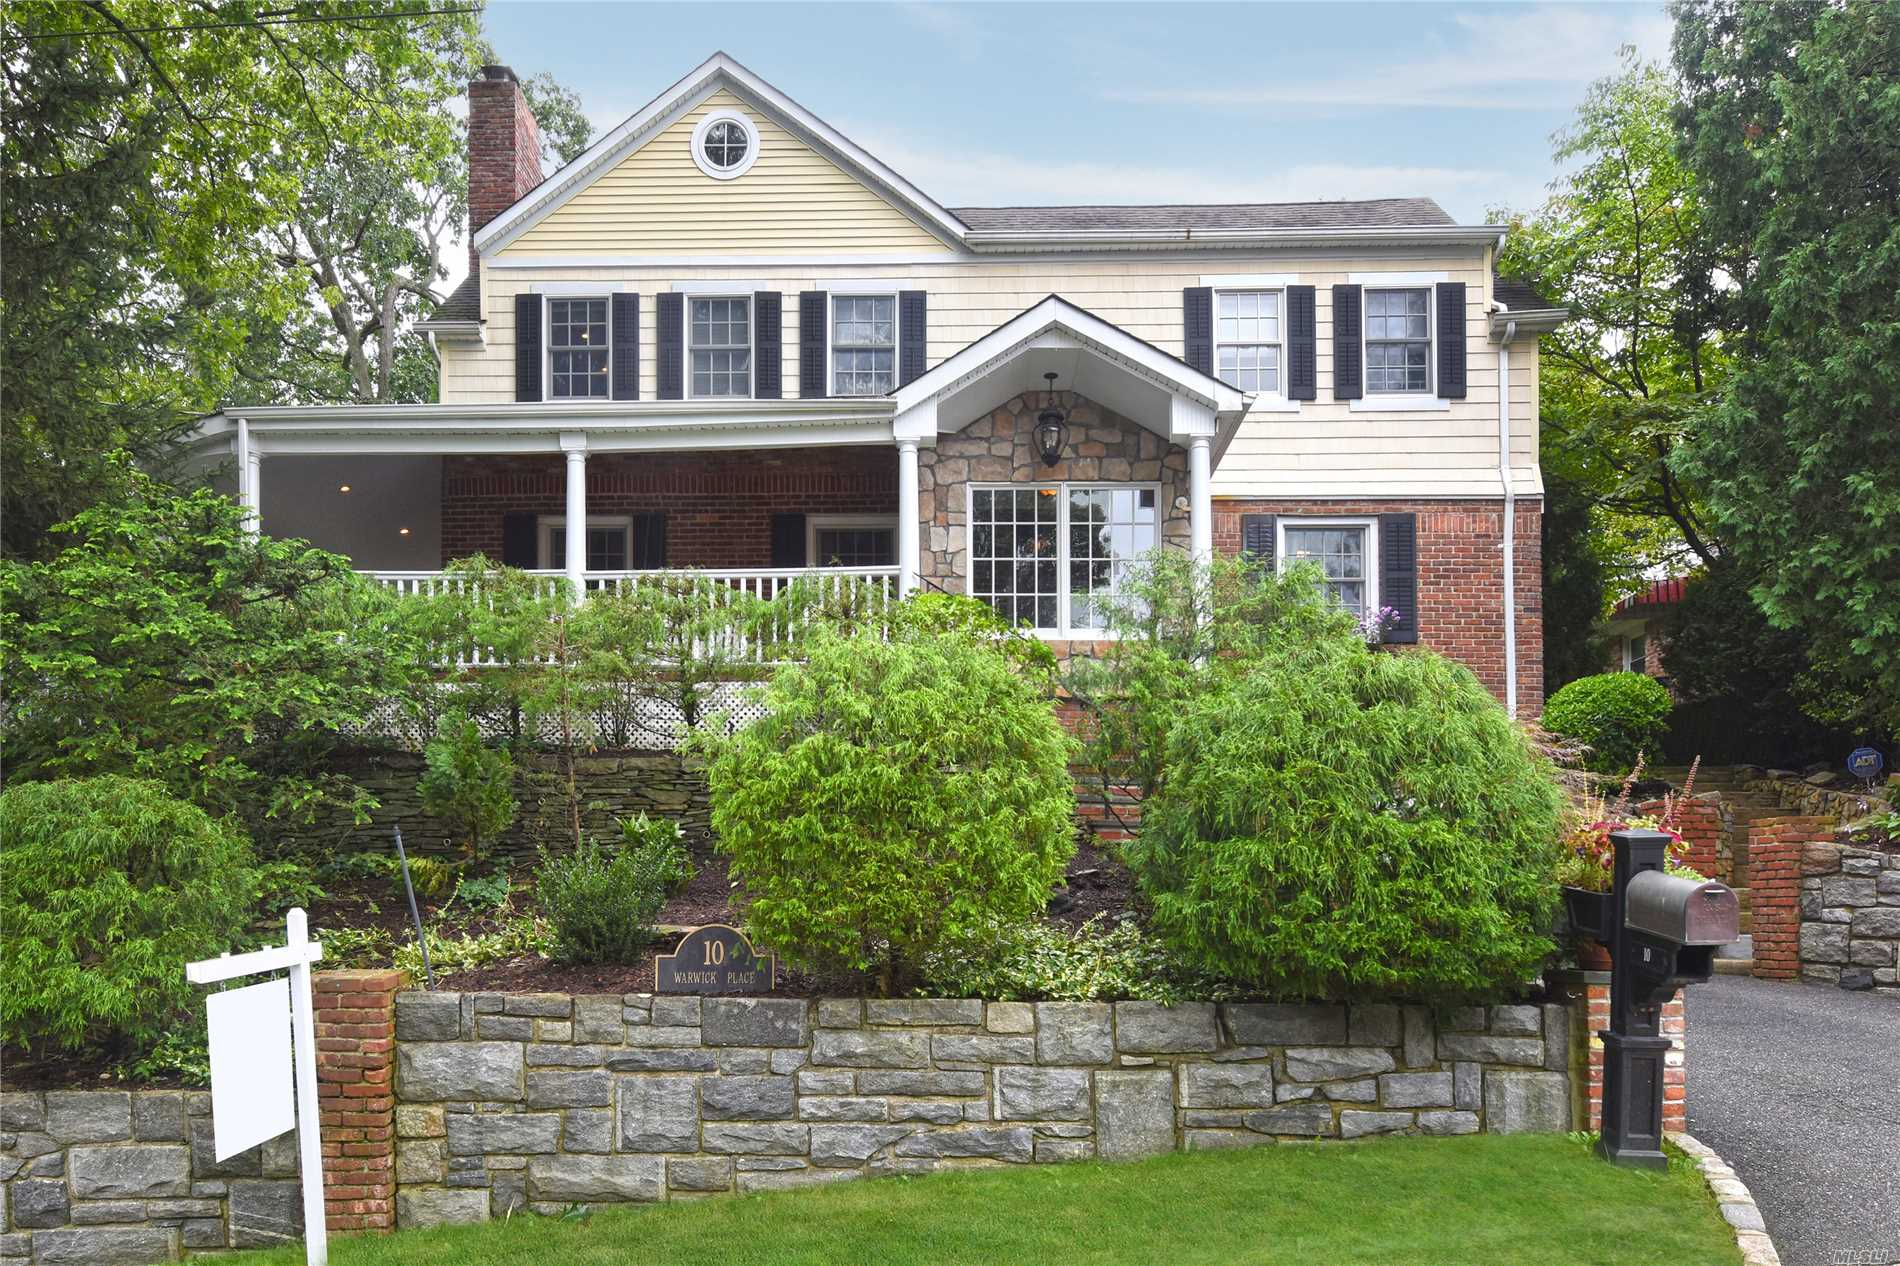 Spectacular House, In Pristine Condition. Entrance Is A Separate Vestibule, Enter Fml Lr W/ Fplc, Flooring Is Dark, Wide Plank Wood, Dr, Kit, Fam Rm Generously Flowing Flr Plan.Kitchen Designed By Showcase And 2 Bedrooms Or 1 Office On The 1st Flr And A Full Bath. 2nd Flr. Boasts A Mbr En-Suite (Like A 5 Star Hotel) And 2 Additional Bedrooms And New Full Bath. Attic Is Floored, W/ A Cedar Closet. All Closet Doors= Solid Wood W/ Auto Lights. Sono Sound System In+Out, Excel. Setting And Grounds